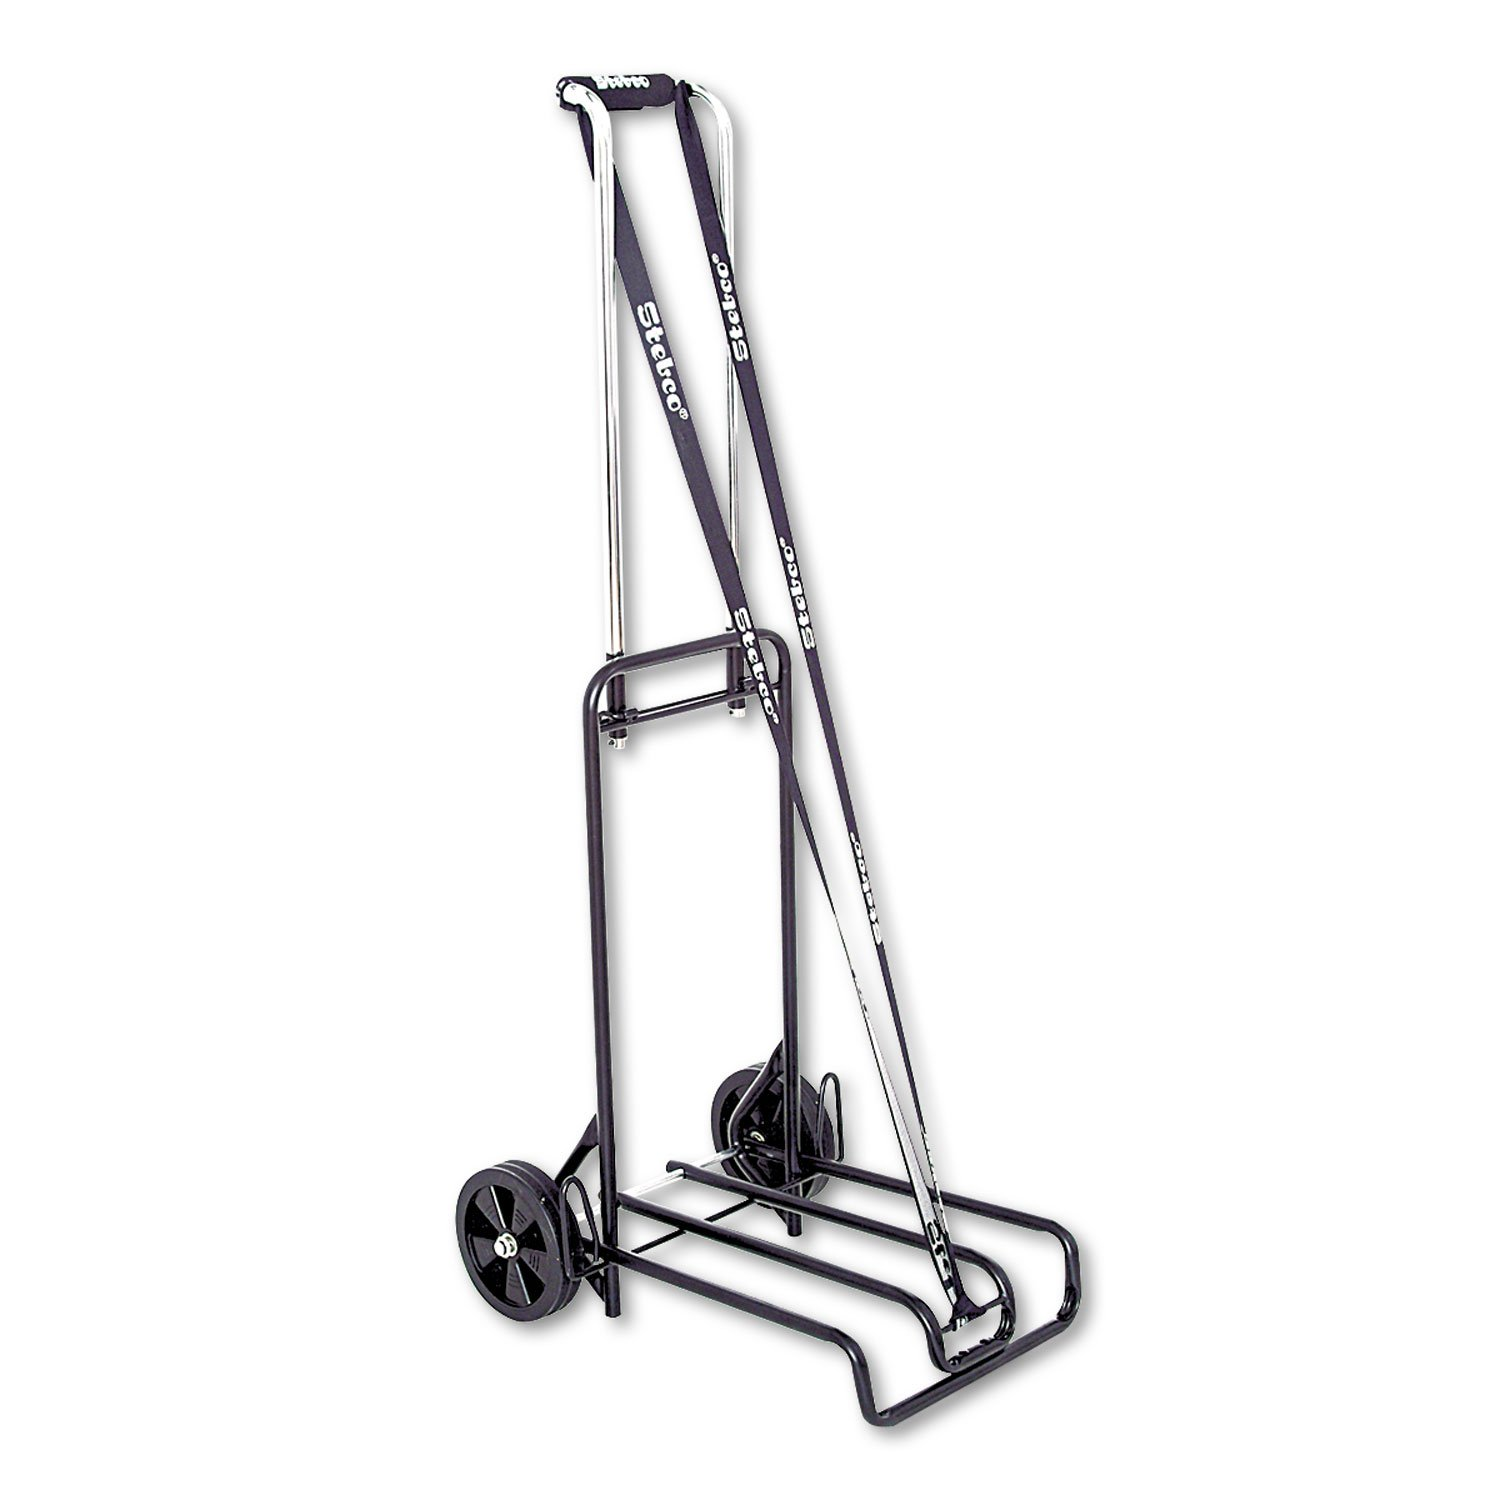 Stebco Luggage Cart - Telescopic Handle - 113.40 kg Capacity - 6 (152.4 mm) Caster Size - Steel - 15.5 Width x 19 Depth x 44.5 Height - Steel Frame - Chrome S.P. Richards CA STB390007BLK